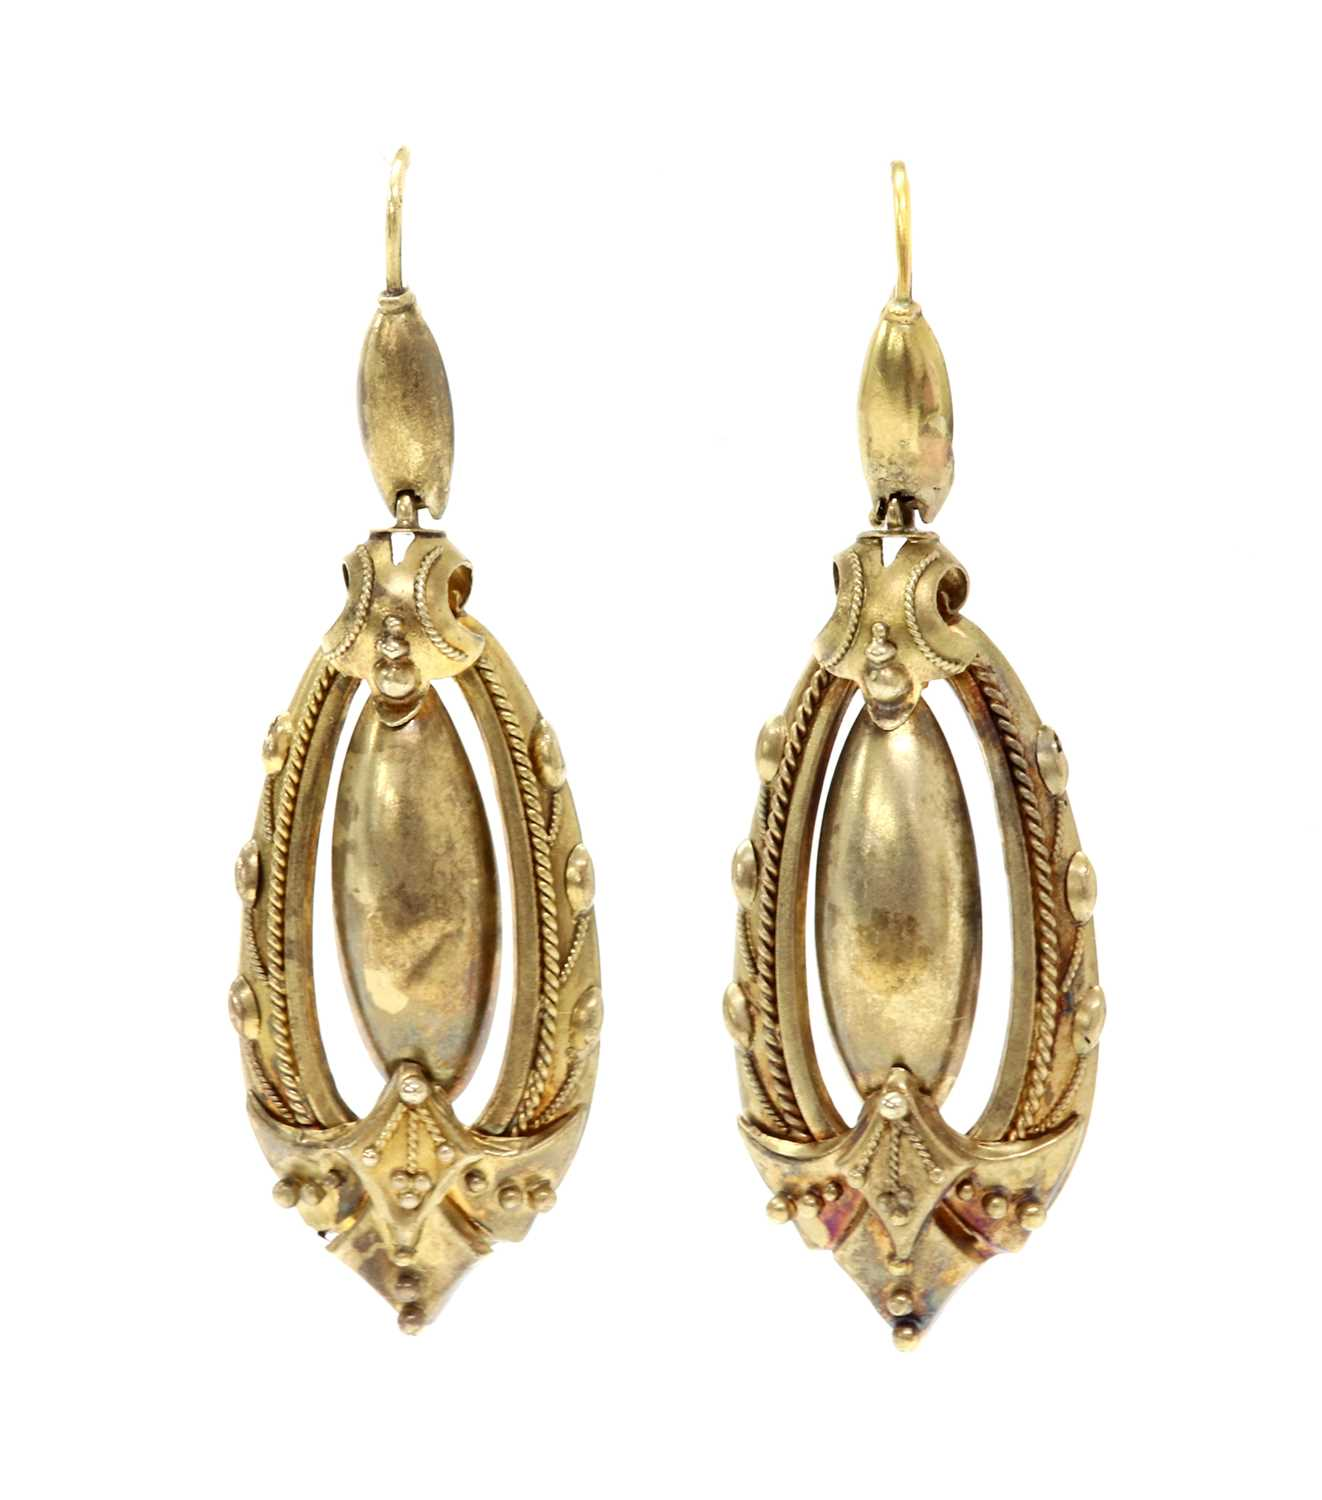 Lot 88 - A pair of Victorian Etruscan style gold drop earrings